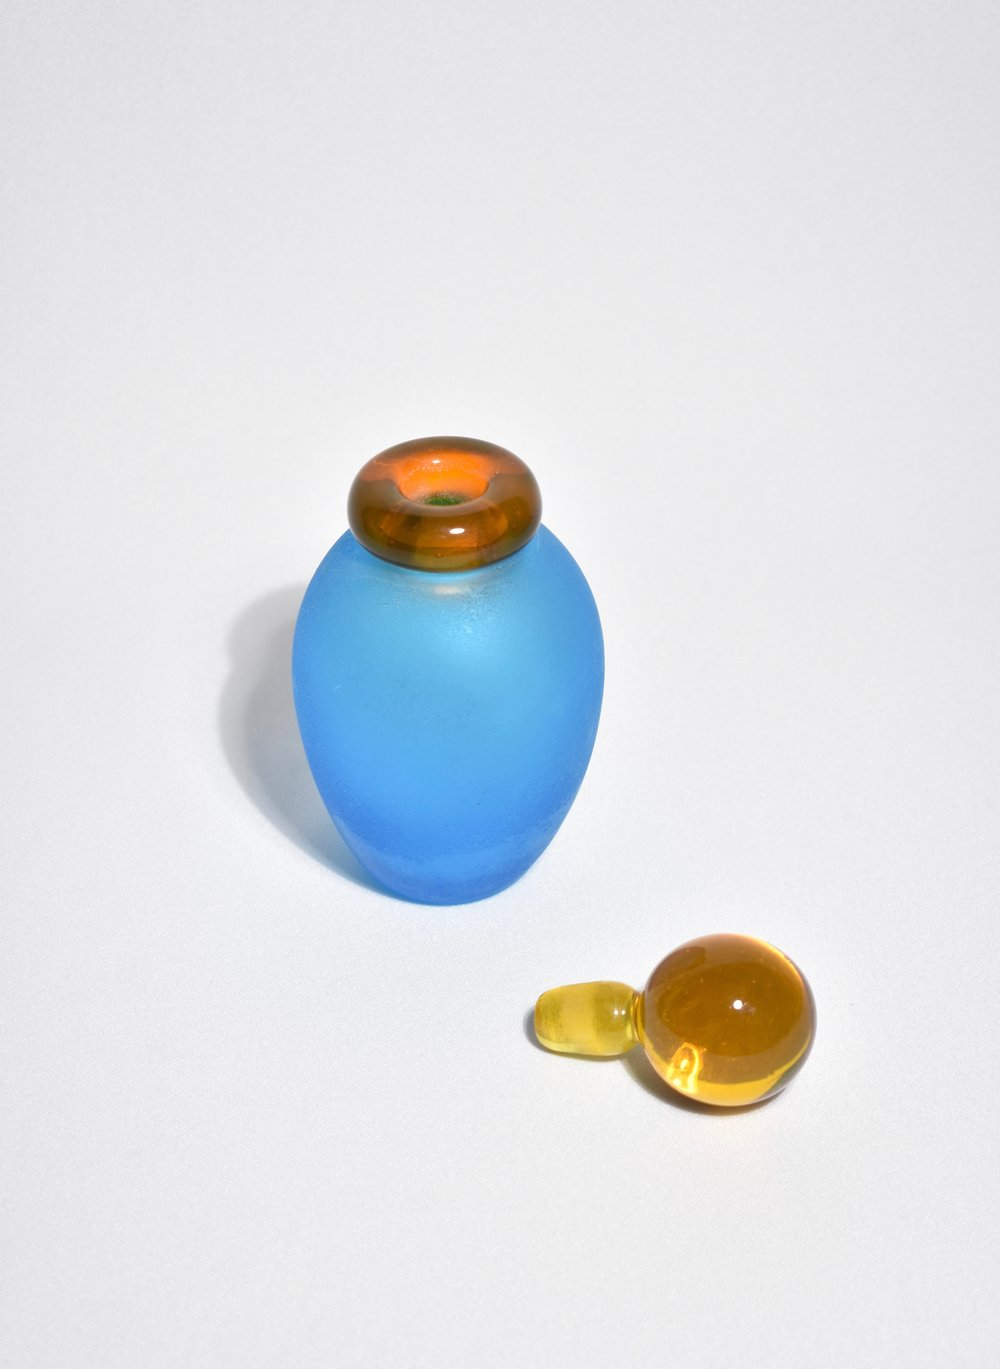 Italian Perfume Vessel in Aqua/Orange